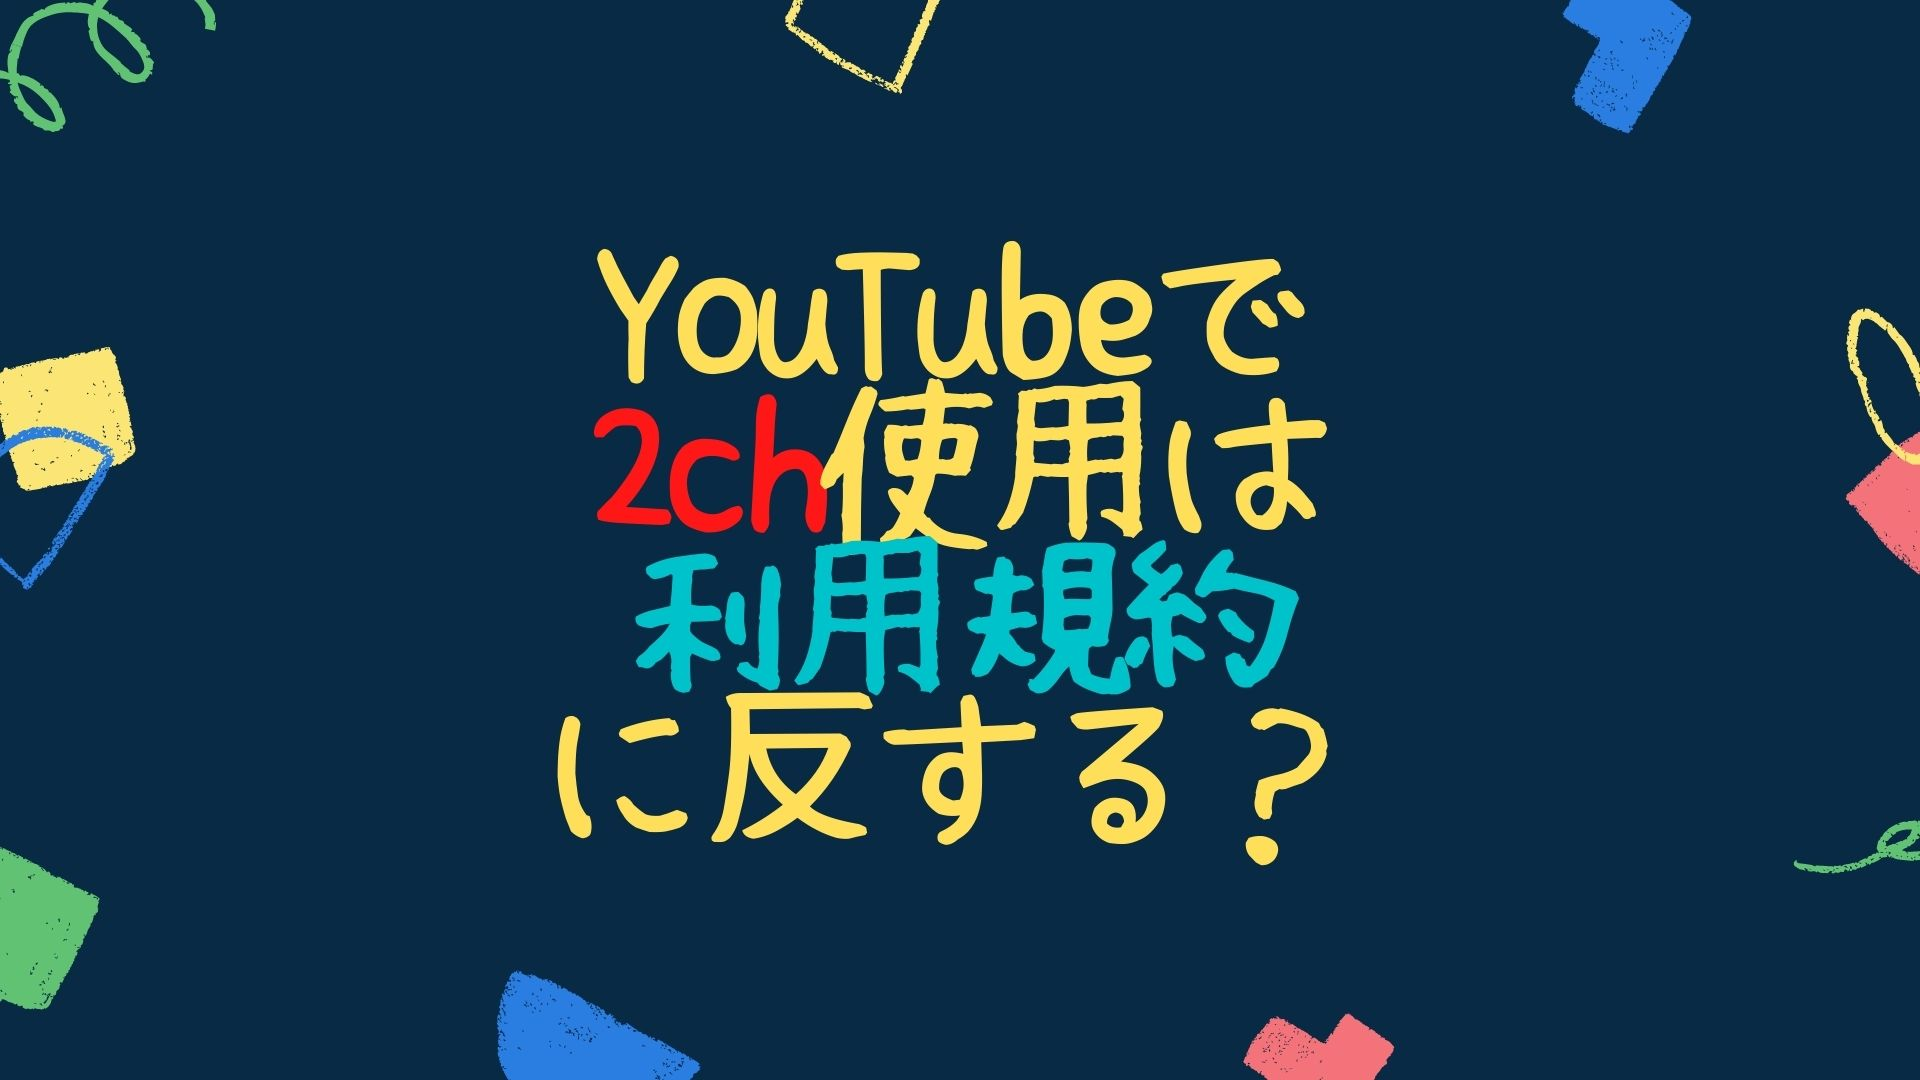 YouTubeで2ch(5ch)の記事を使うのは利用規約に反する